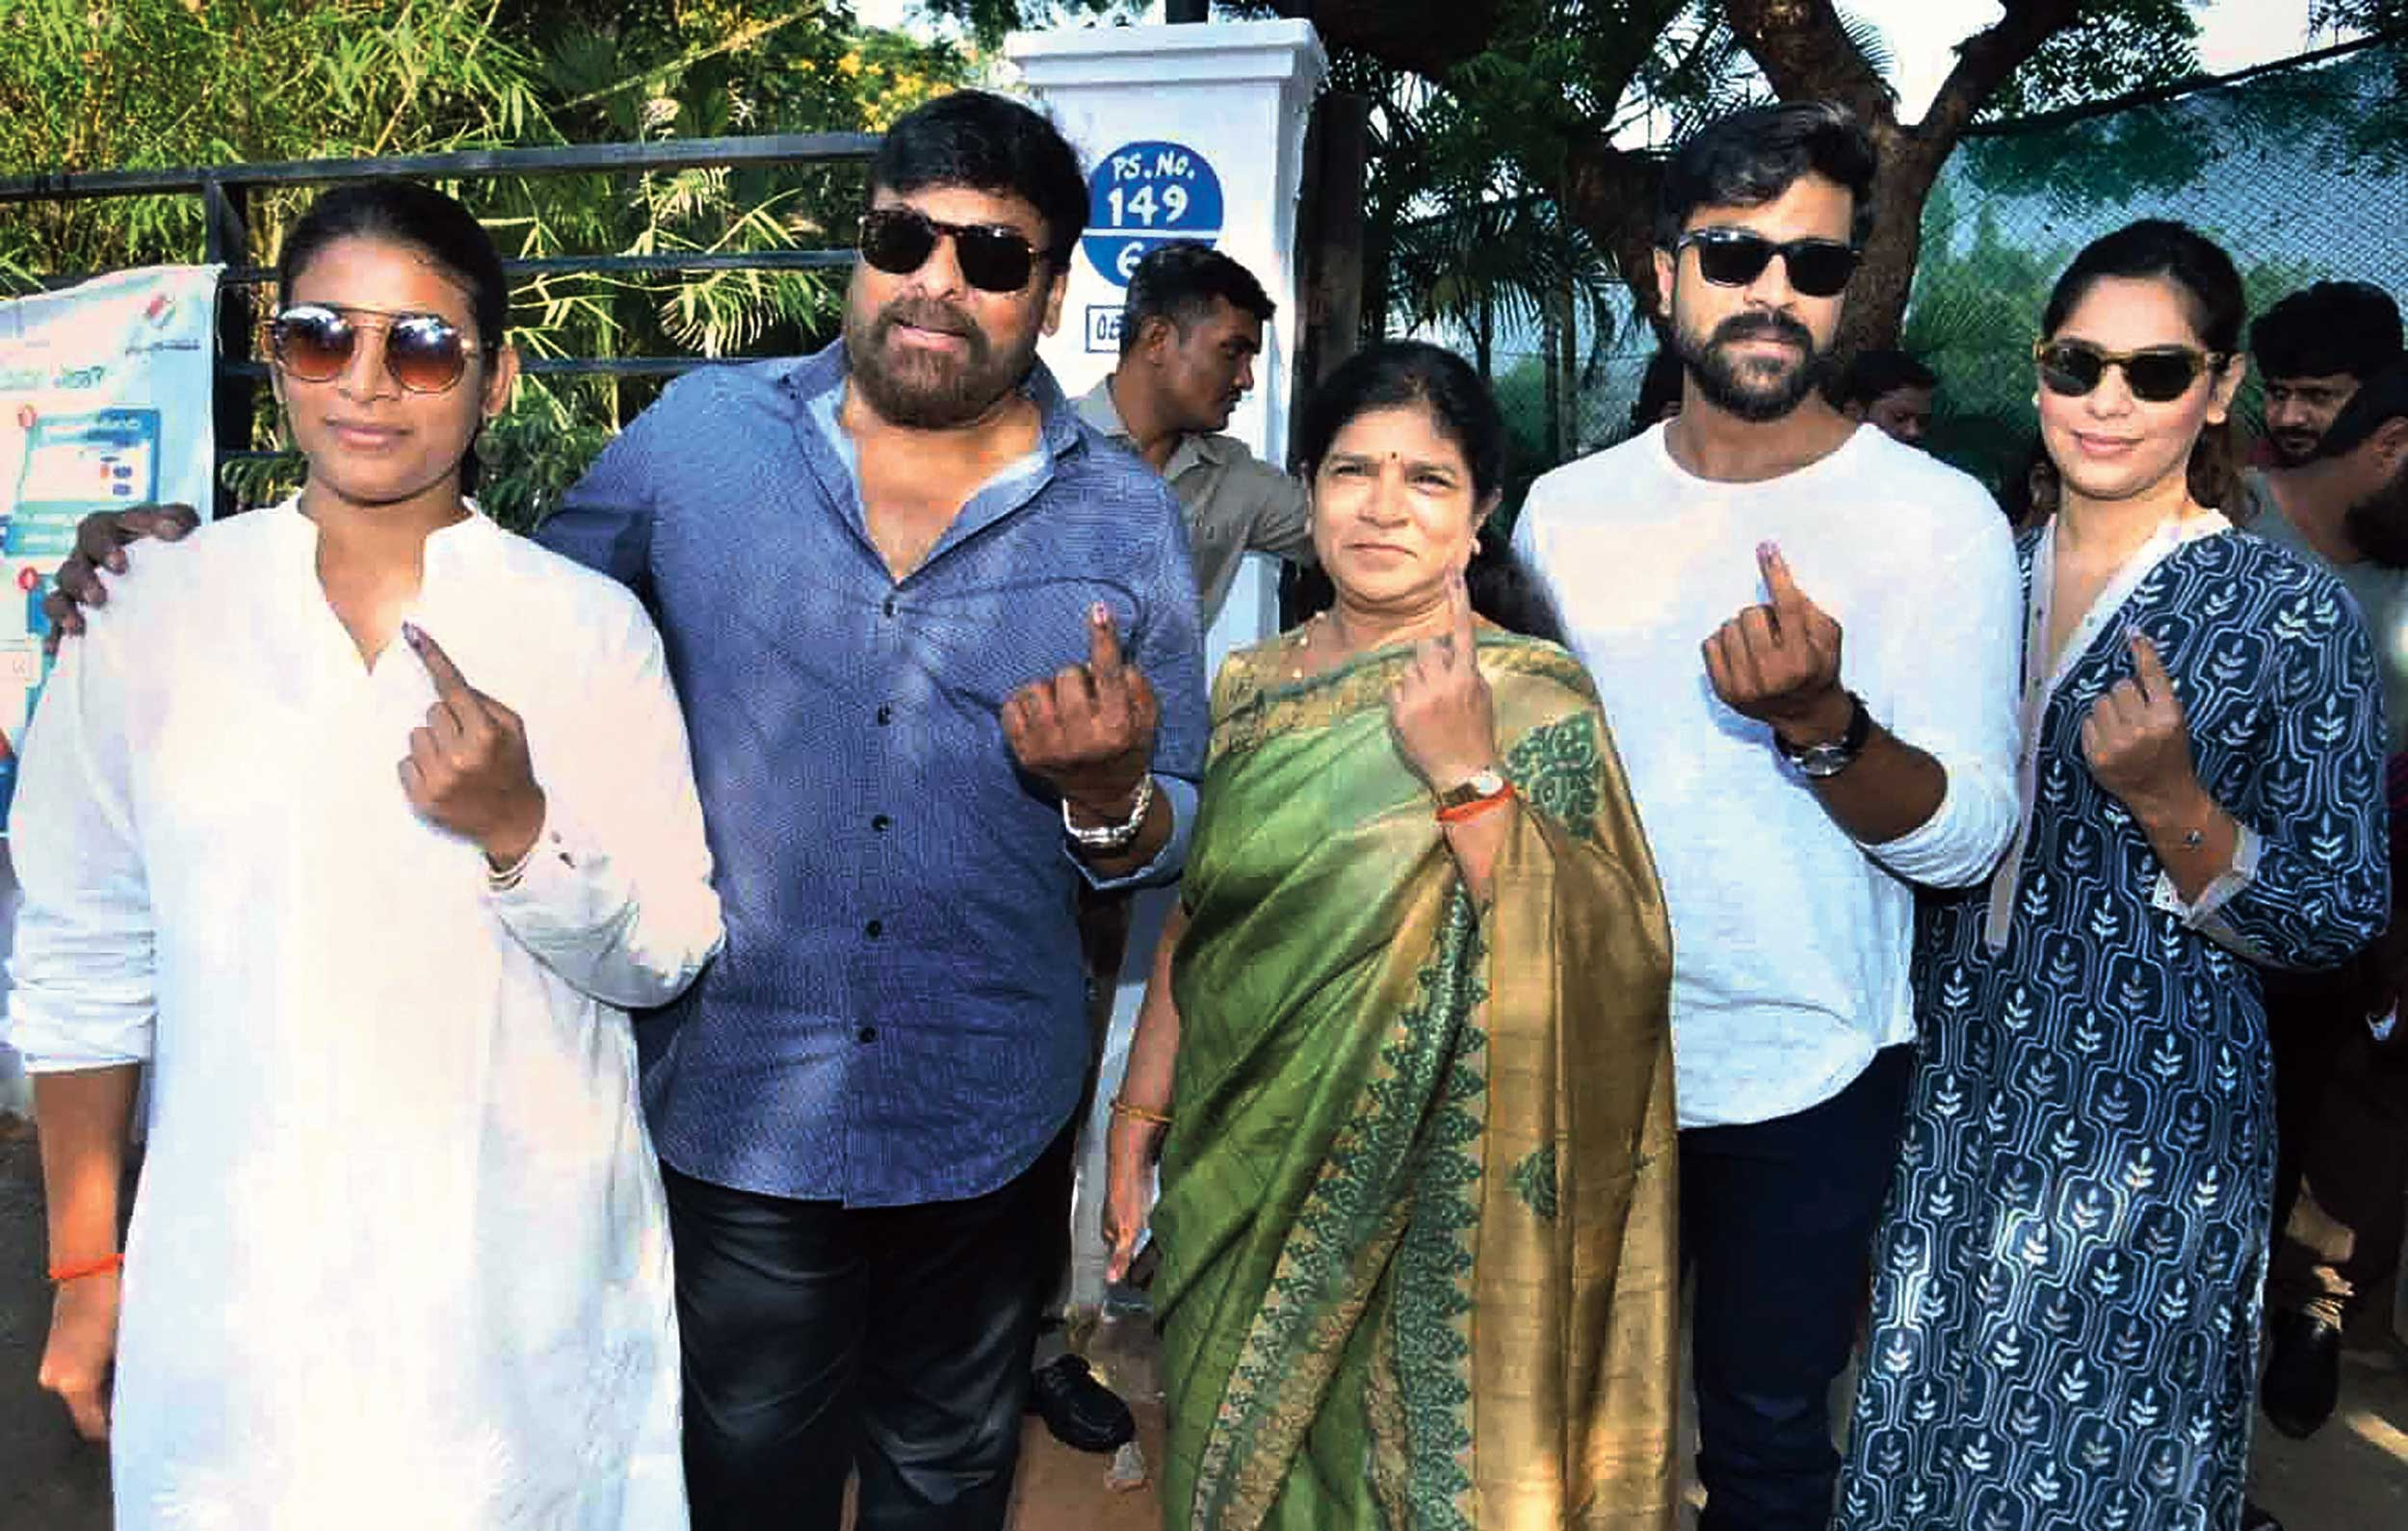 Telugu film star Chiranjeevi (second from left) and his family members after casting their votes at Jubilee Hills in Hyderabad on Thursday.